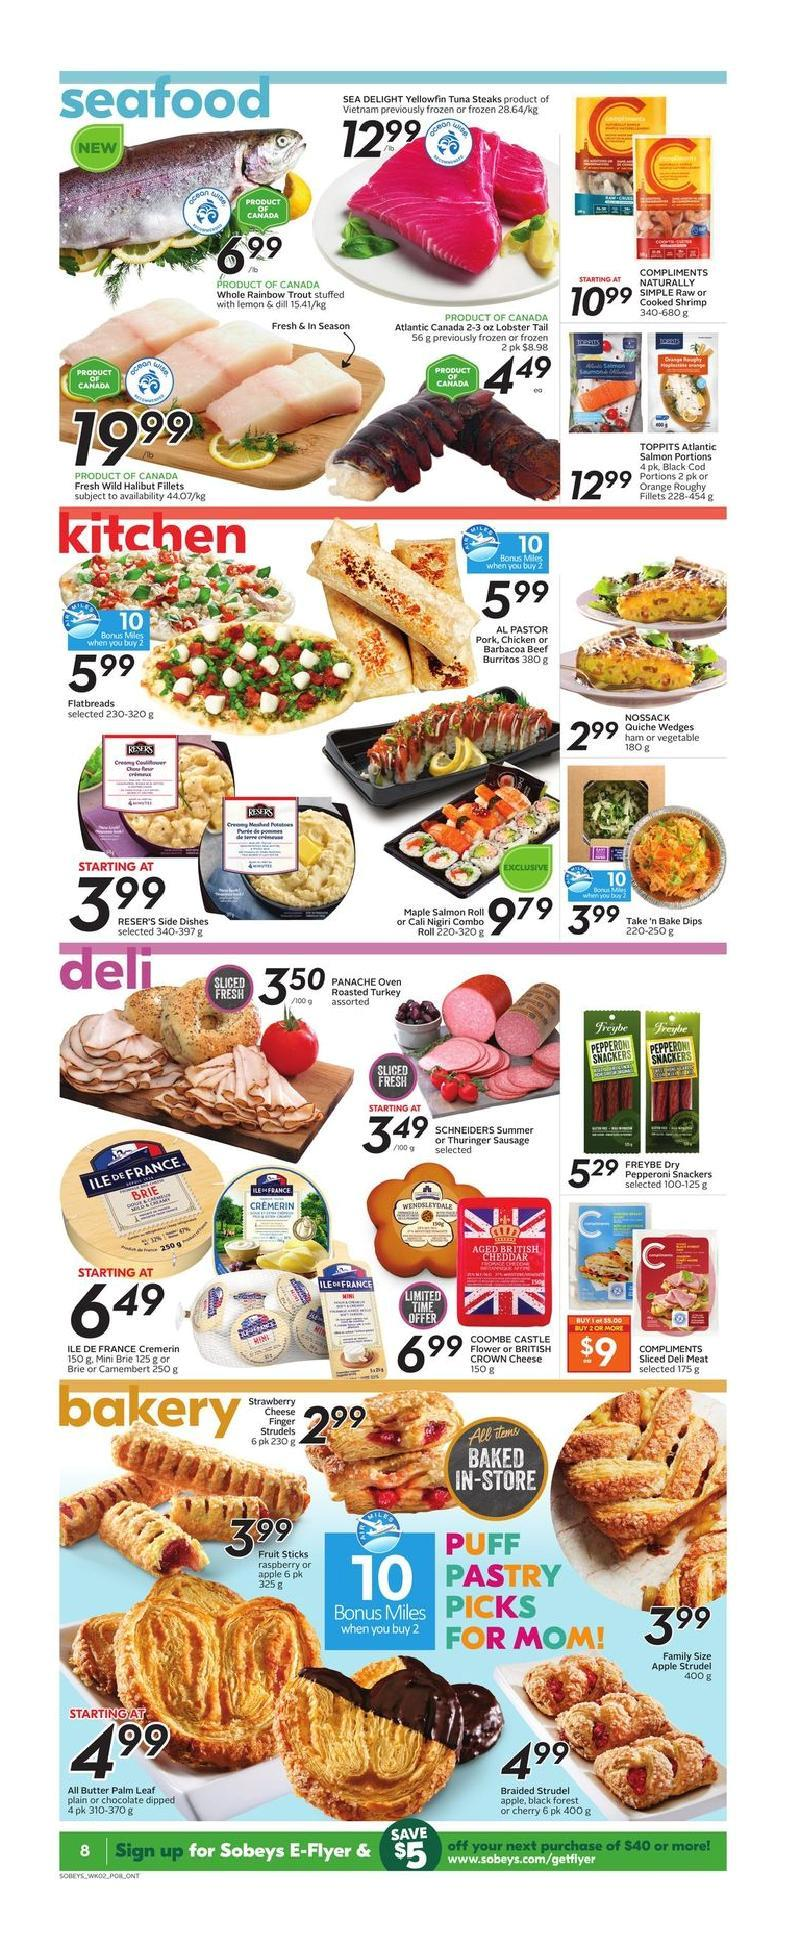 13 Sobeys ON Flyer May 6 May 12 2021